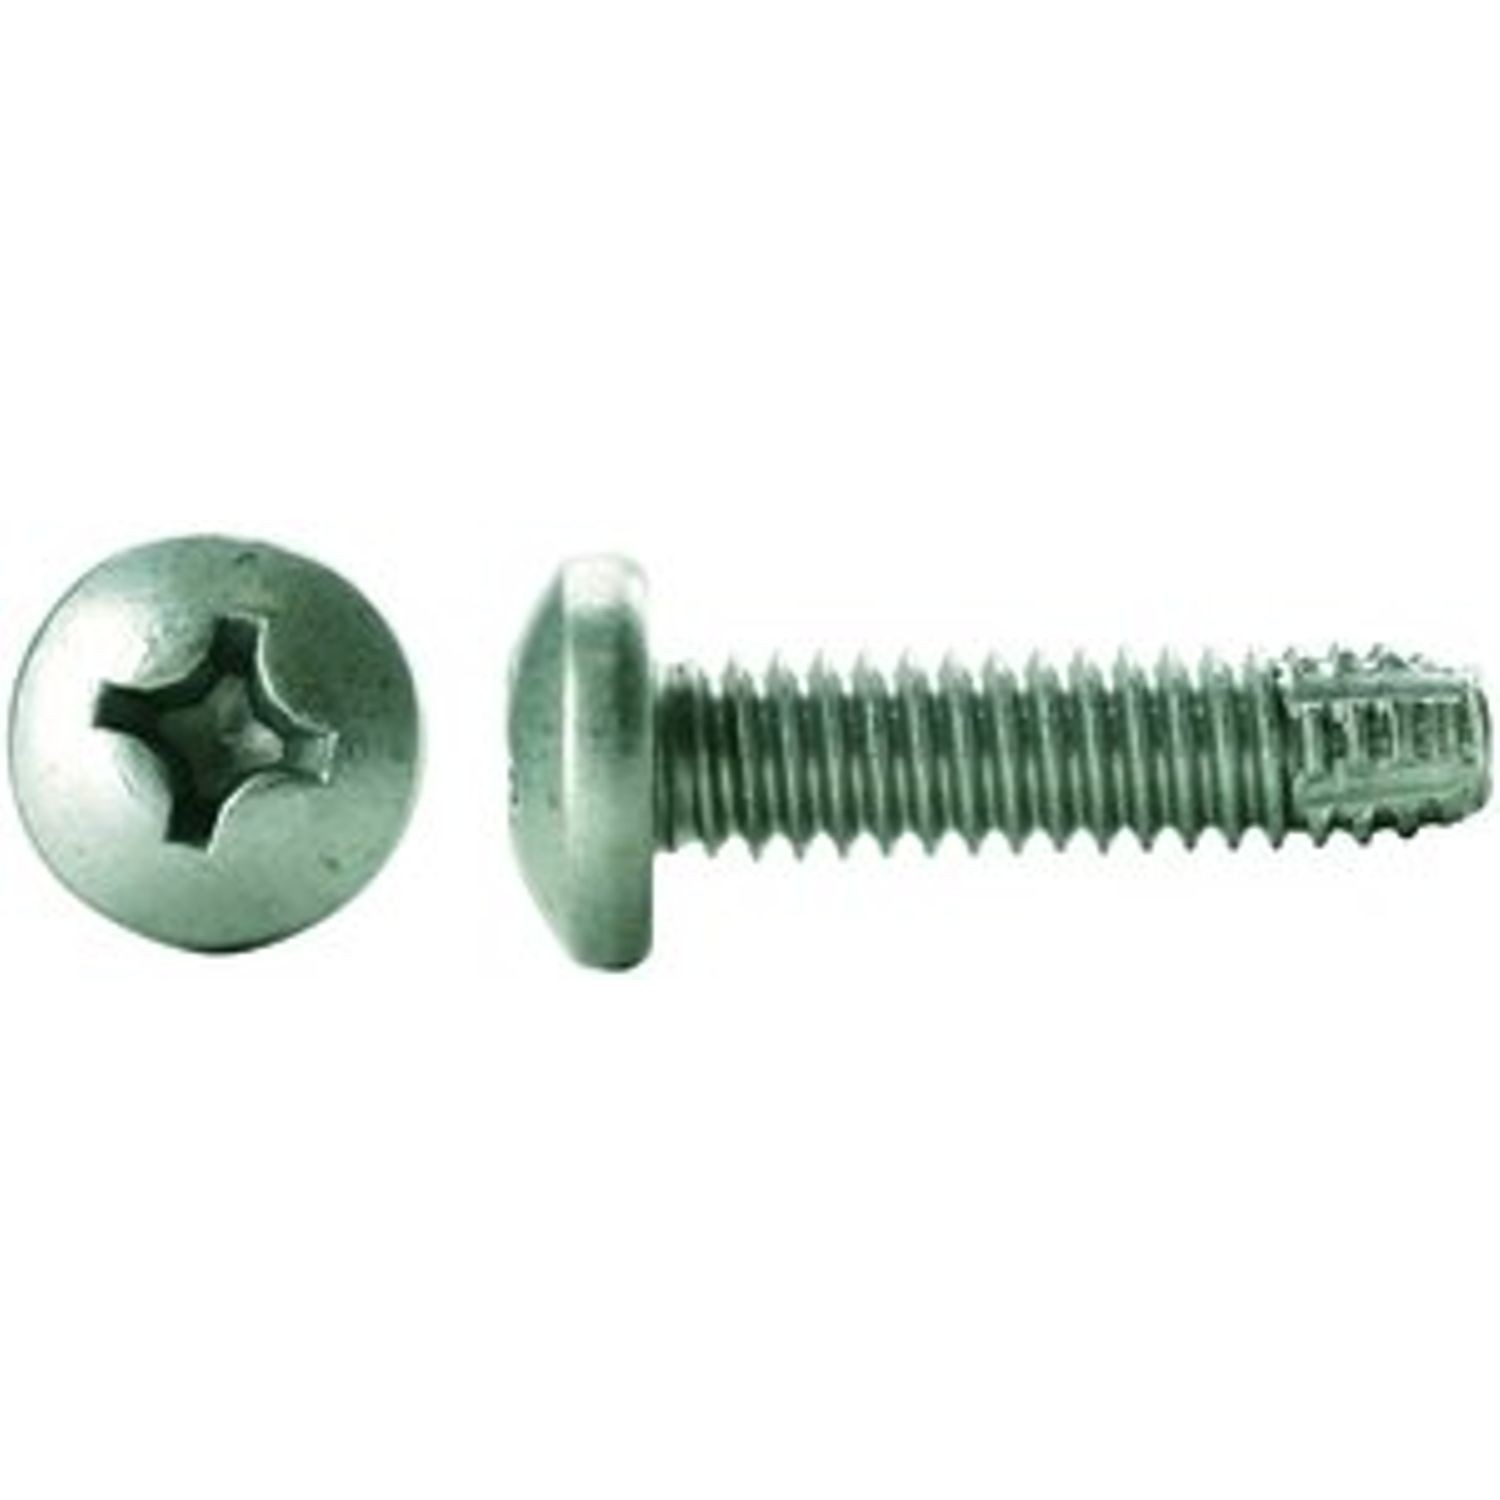 #12-24 x 1 IN. Phillips Drive Pan Head Zinc Finish Type F Point